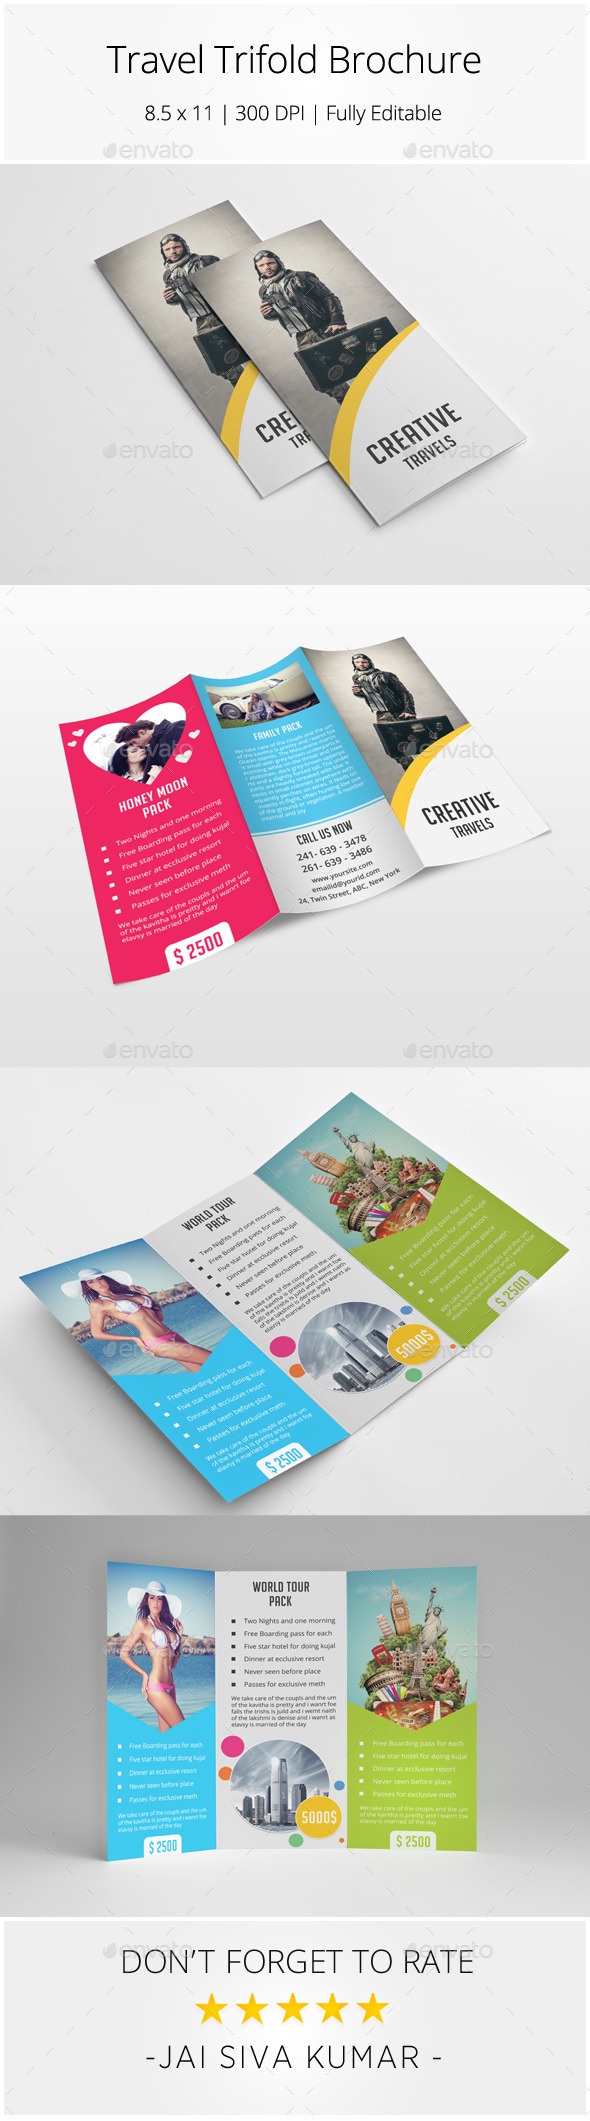 Travel Trifold Brochure - Catalogs Brochures